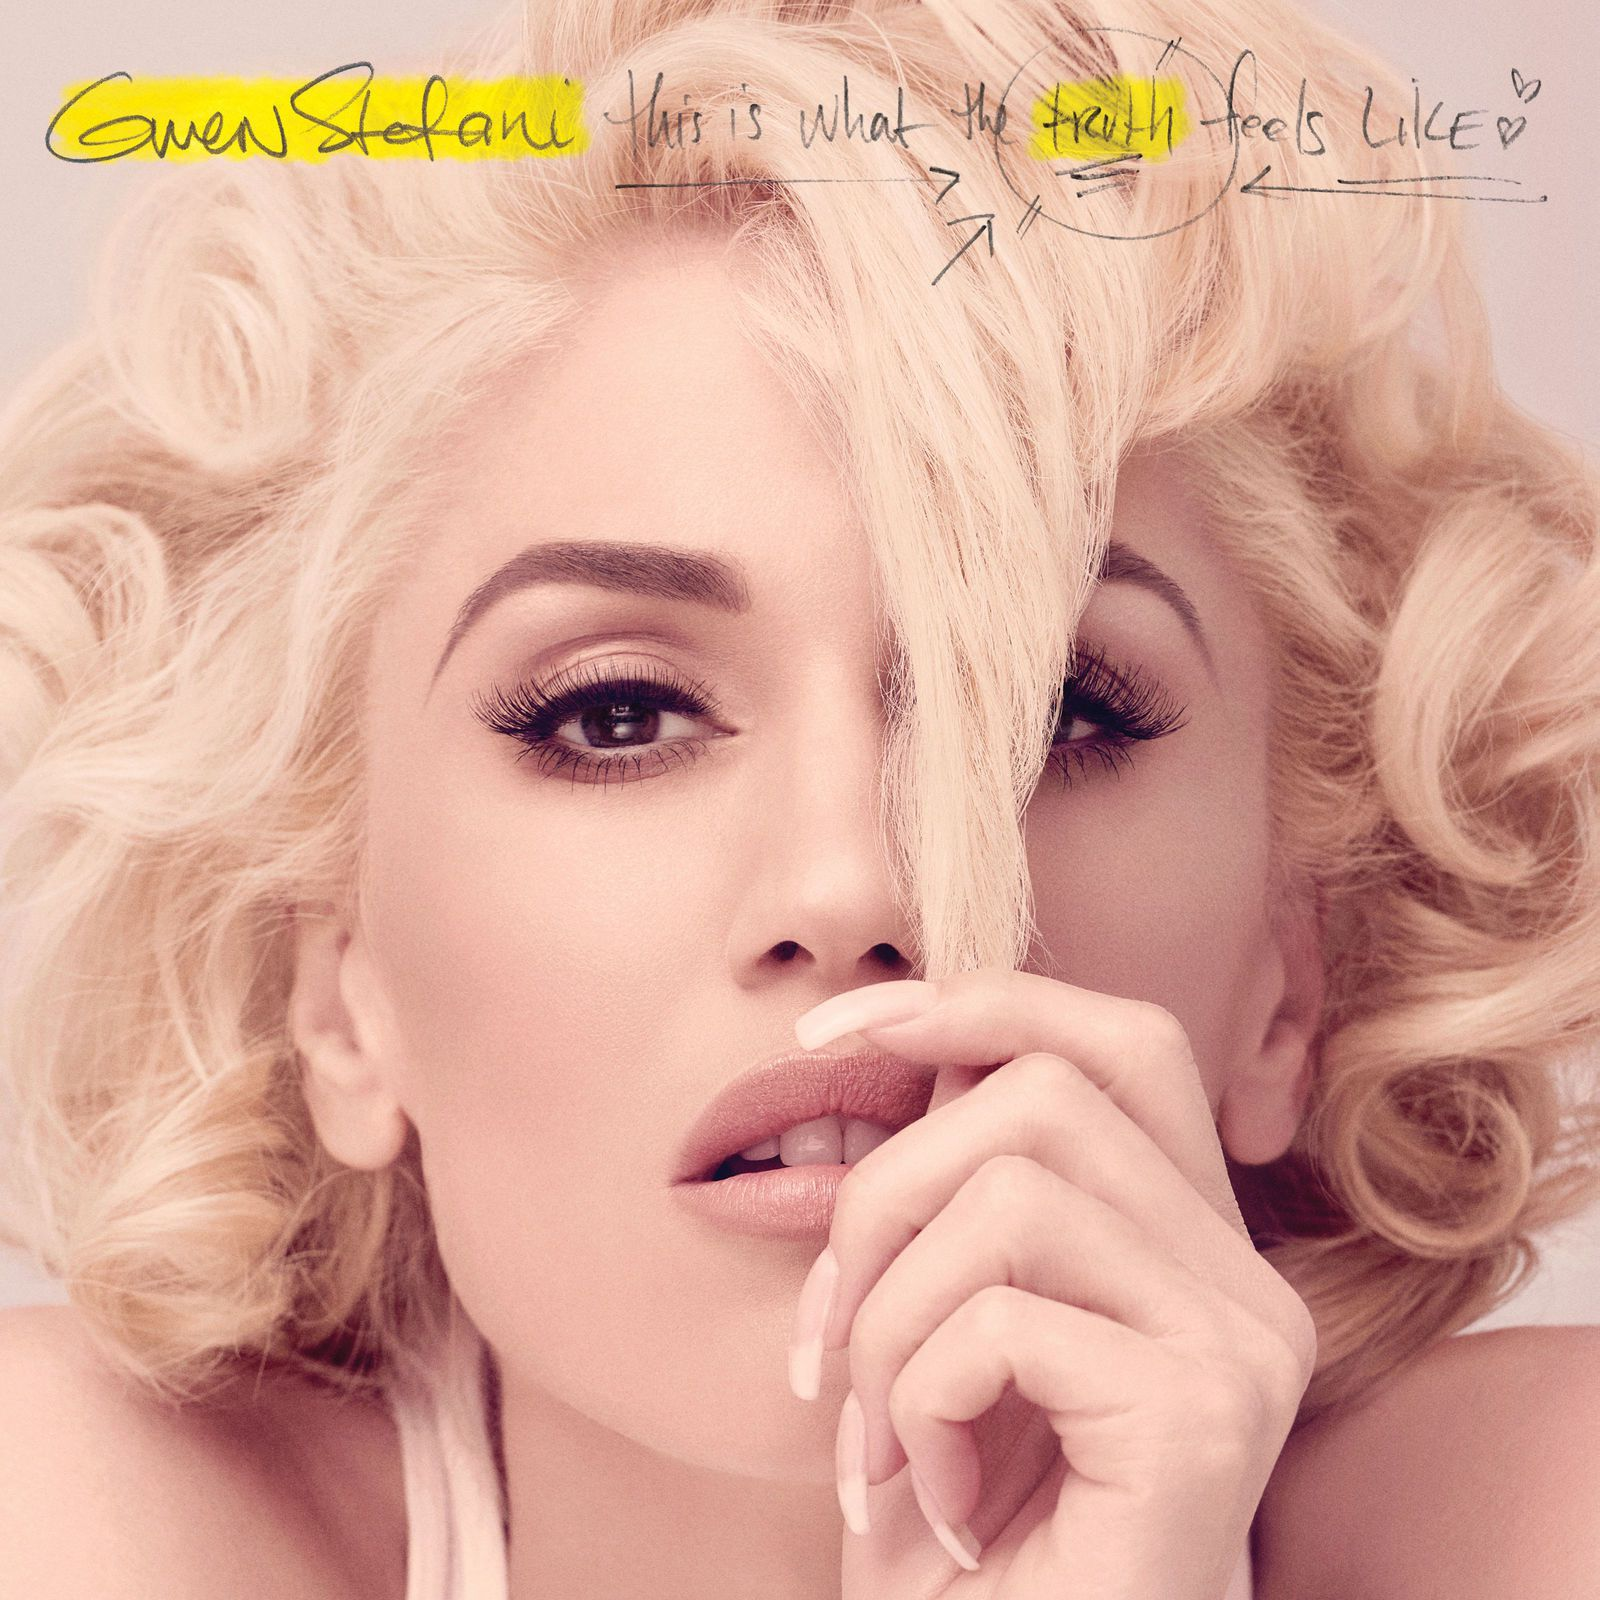 Sortie CULTE: Gwen Stefani This Is What The Truth Feels Like